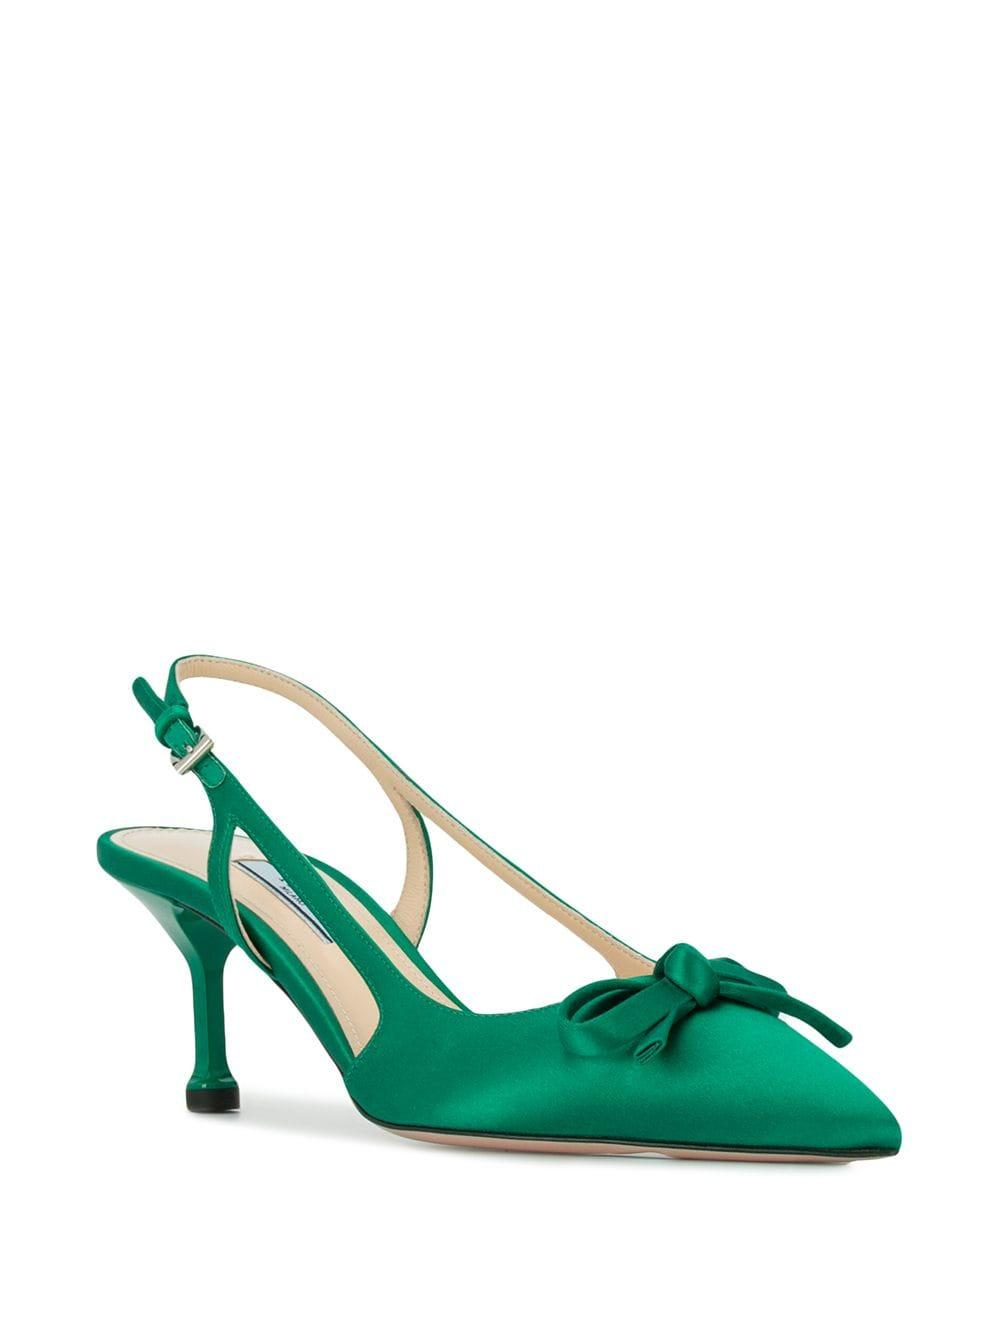 2aa6979dc008 Lyst - Prada Satin Slingback Pumps in Green - Save 2%